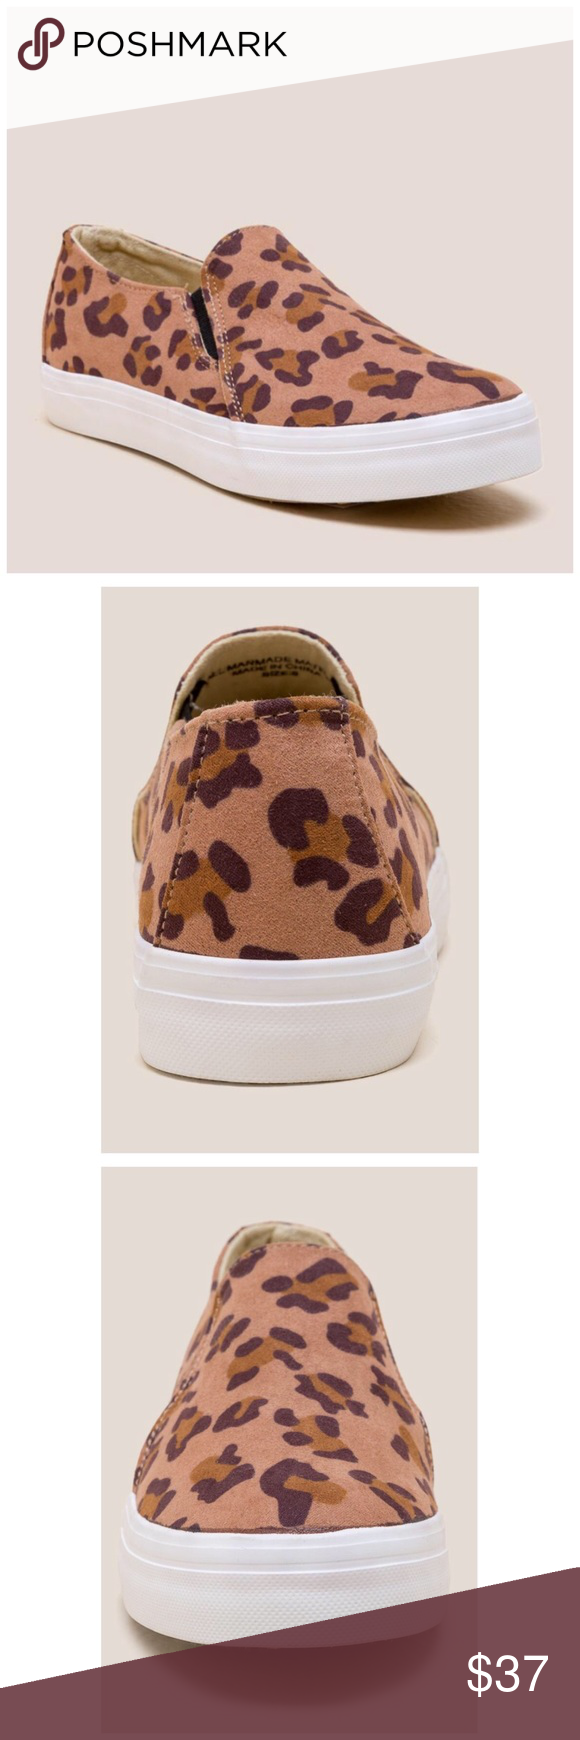 313acecbe79e Restricted Vanity Leopard Slip On Sneaker New without box Canvas man-made  upper -Allover leopard detail -Slip on -Man-made sole Posh Mishmosh 🌷  Restricted ...